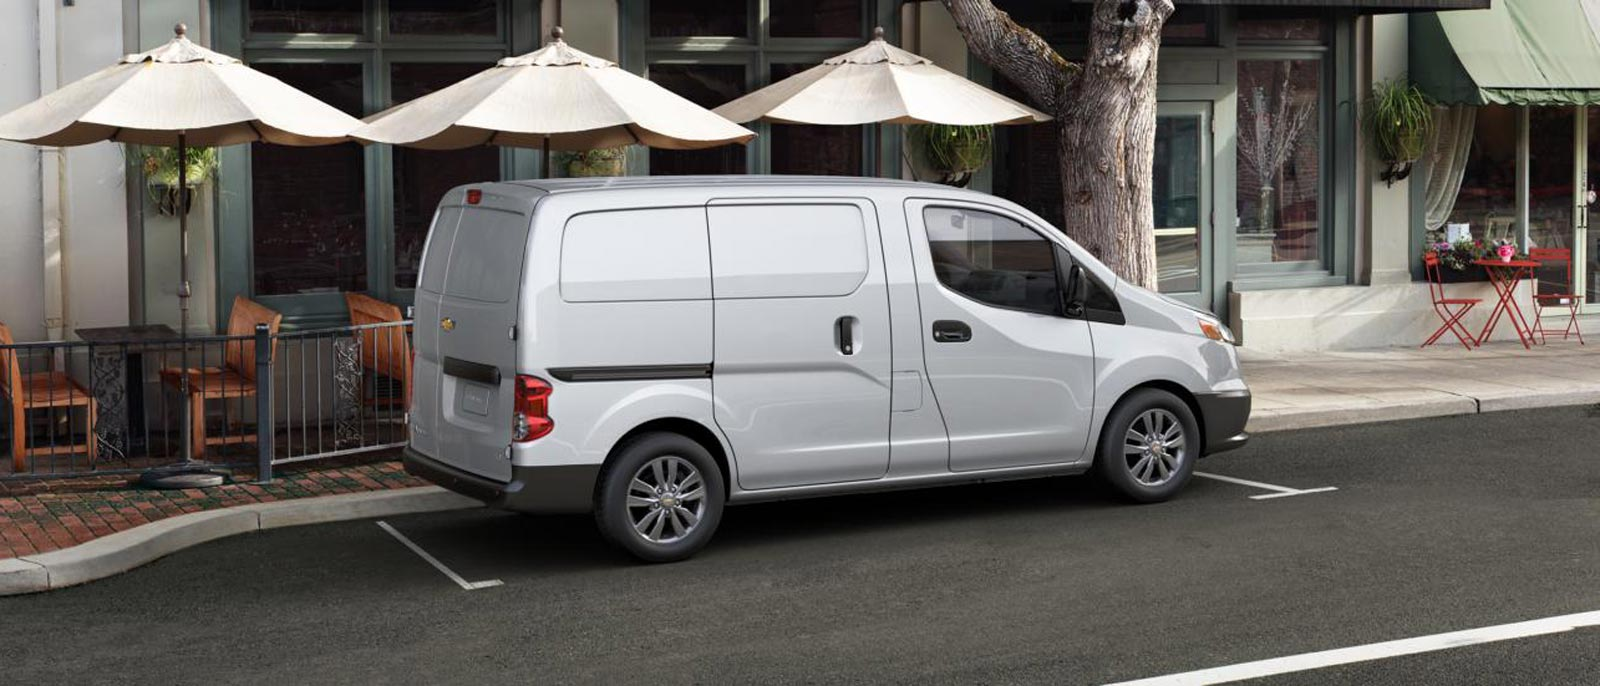 2016 Chevrolet City Express profile view